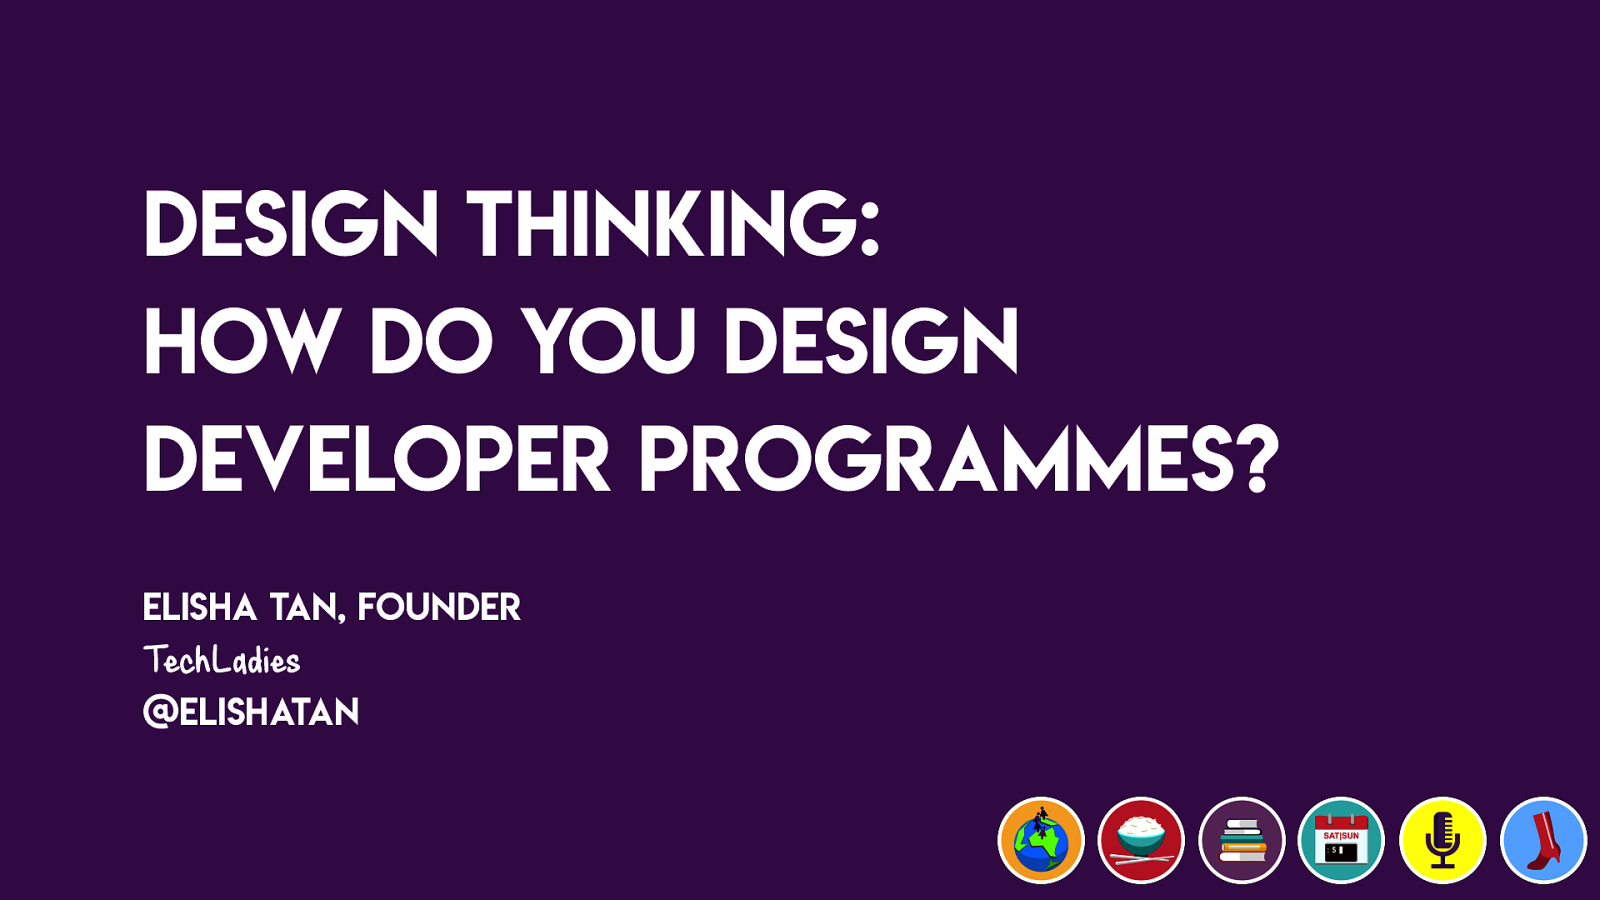 Design Thinking: How do you design developer programs?